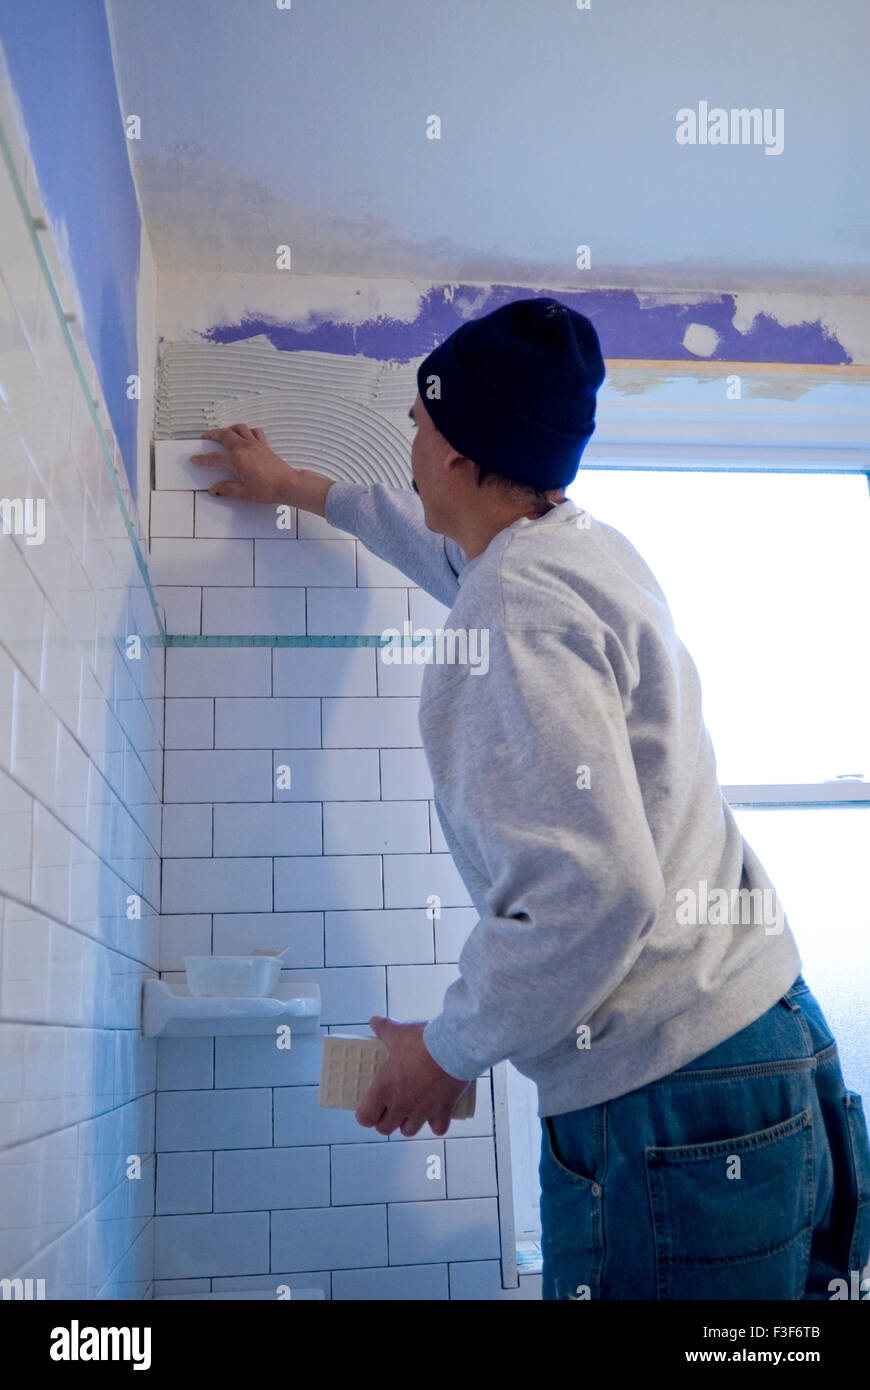 Mexican man tiling a bathroom wall with subway tiles Stock Photo ...